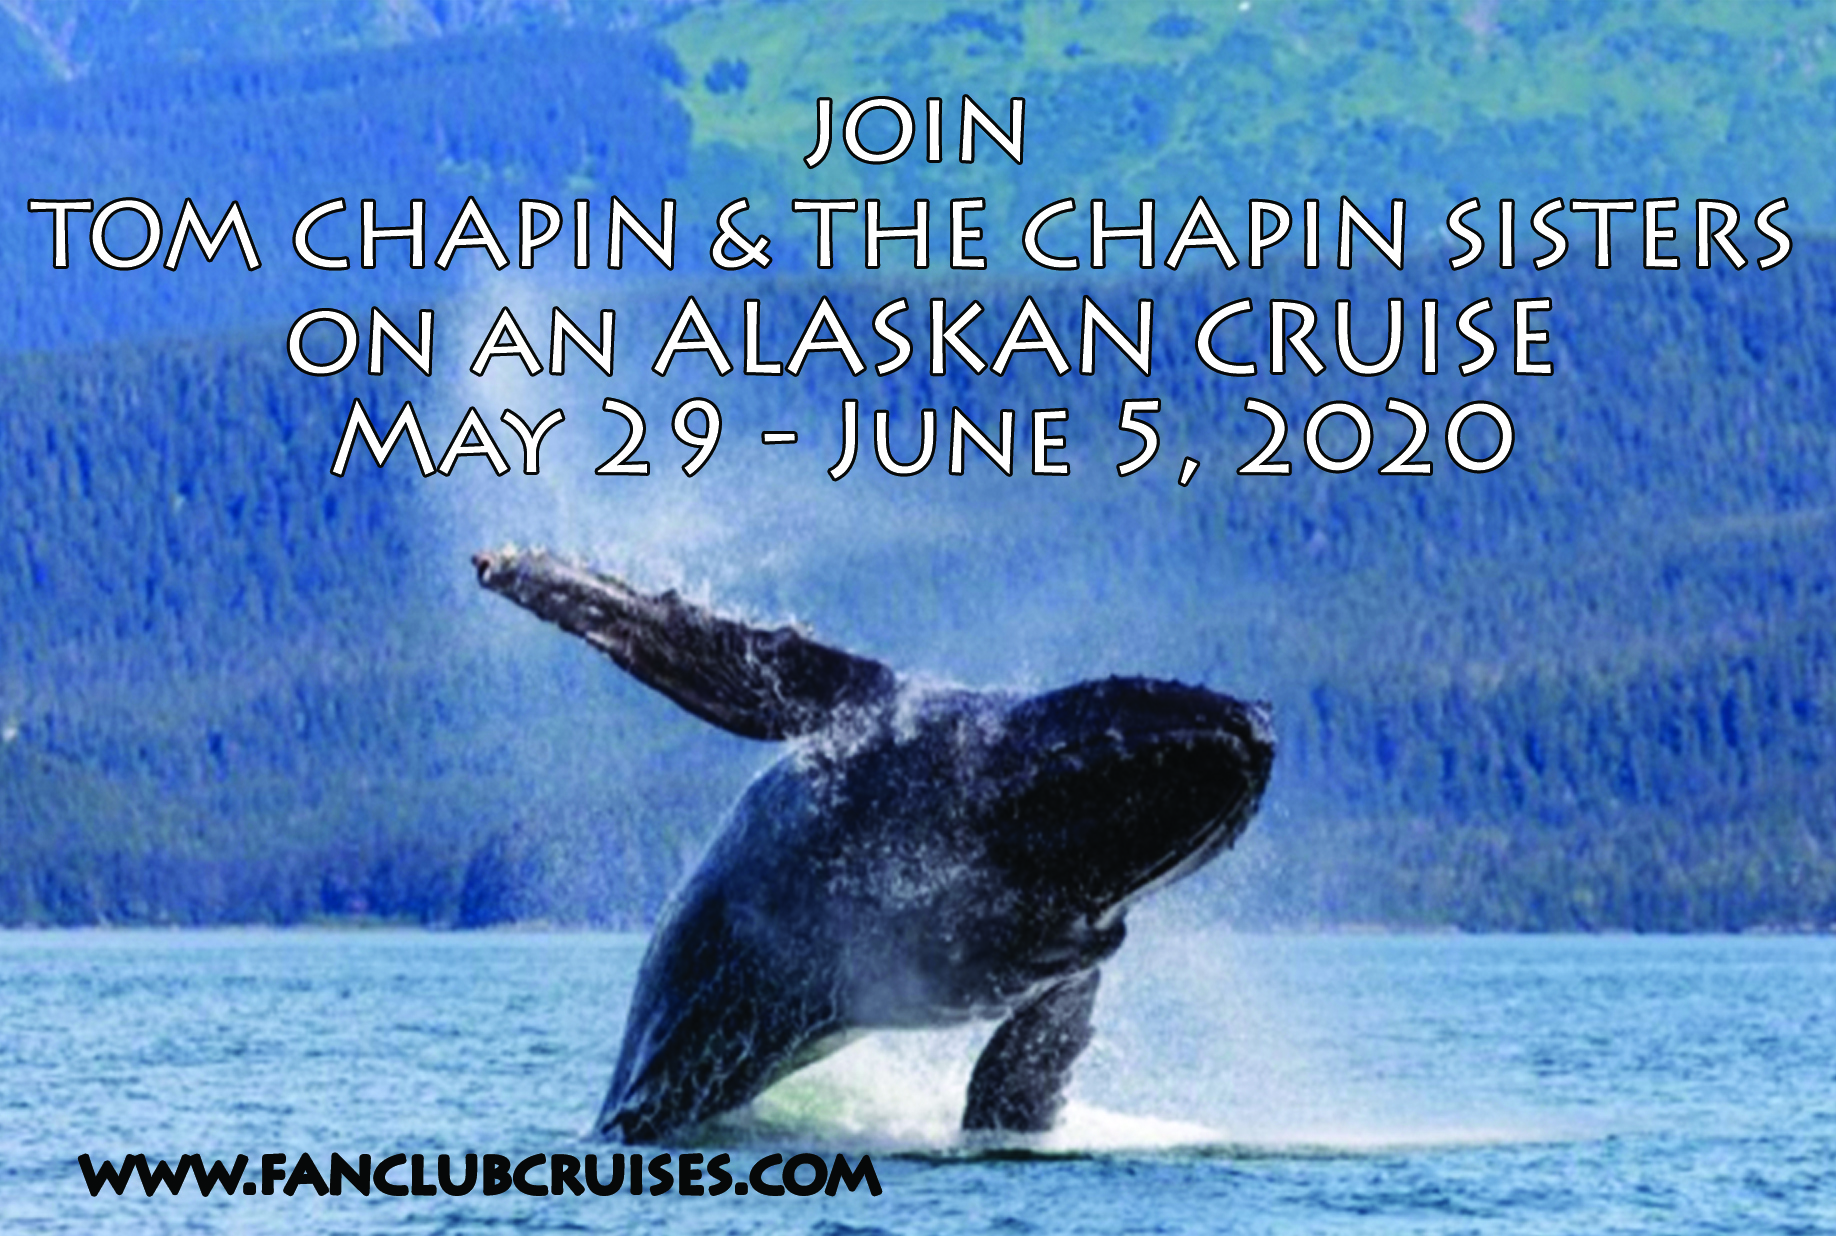 Tom Chapin's Official Web Site